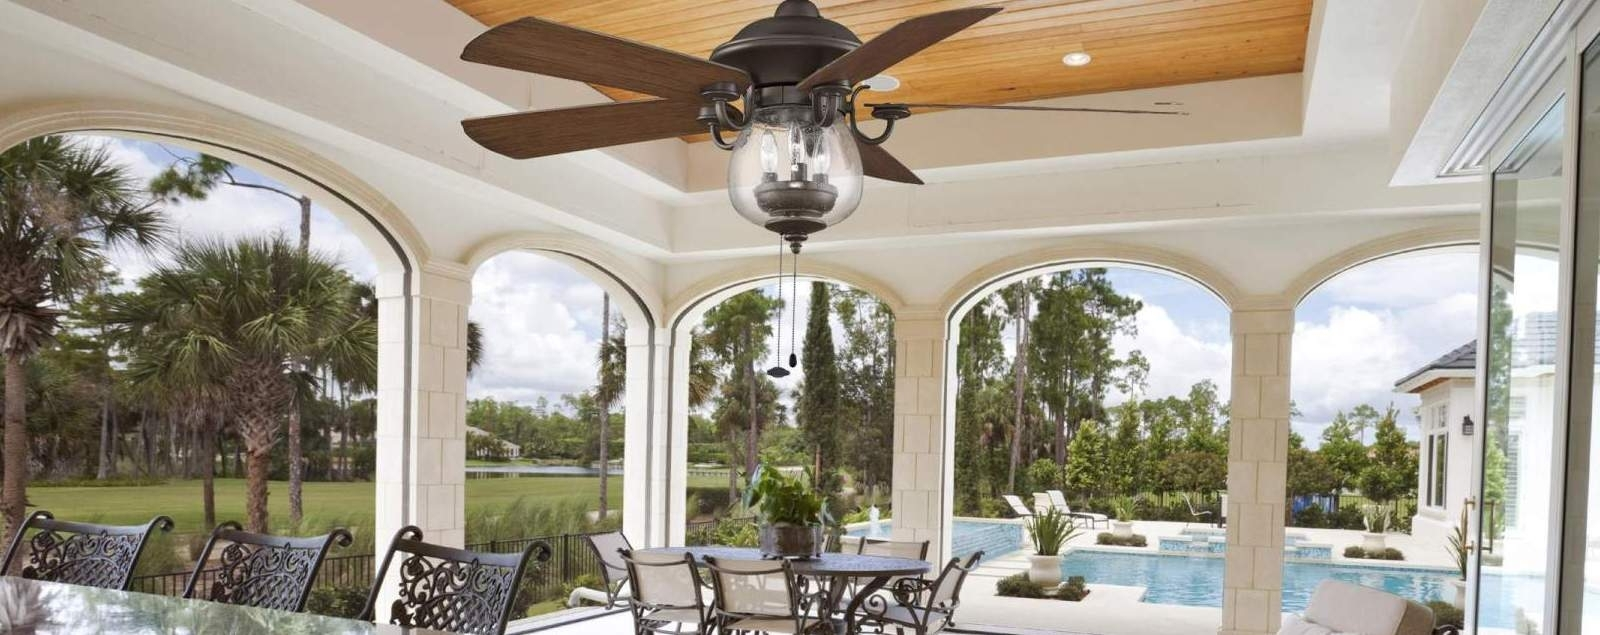 Best And Newest Outdoor Ceiling Fans – Shop Wet, Dry, And Damp Rated Outdoor Fans Intended For Hurricane Outdoor Ceiling Fans (Gallery 10 of 20)